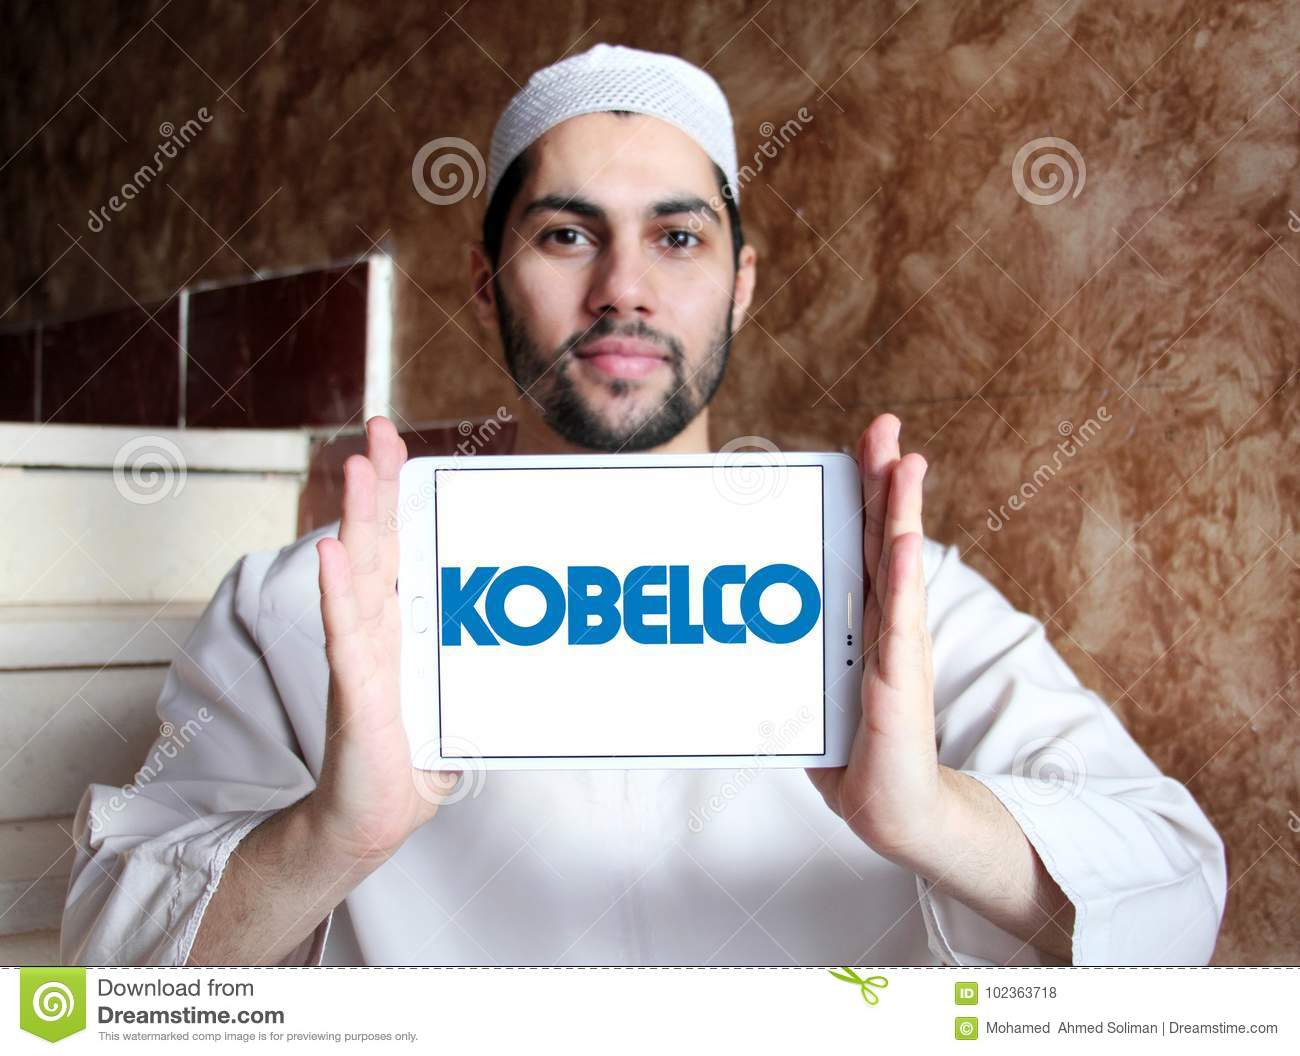 Kobelco steel company logo editorial stock photo  Image of